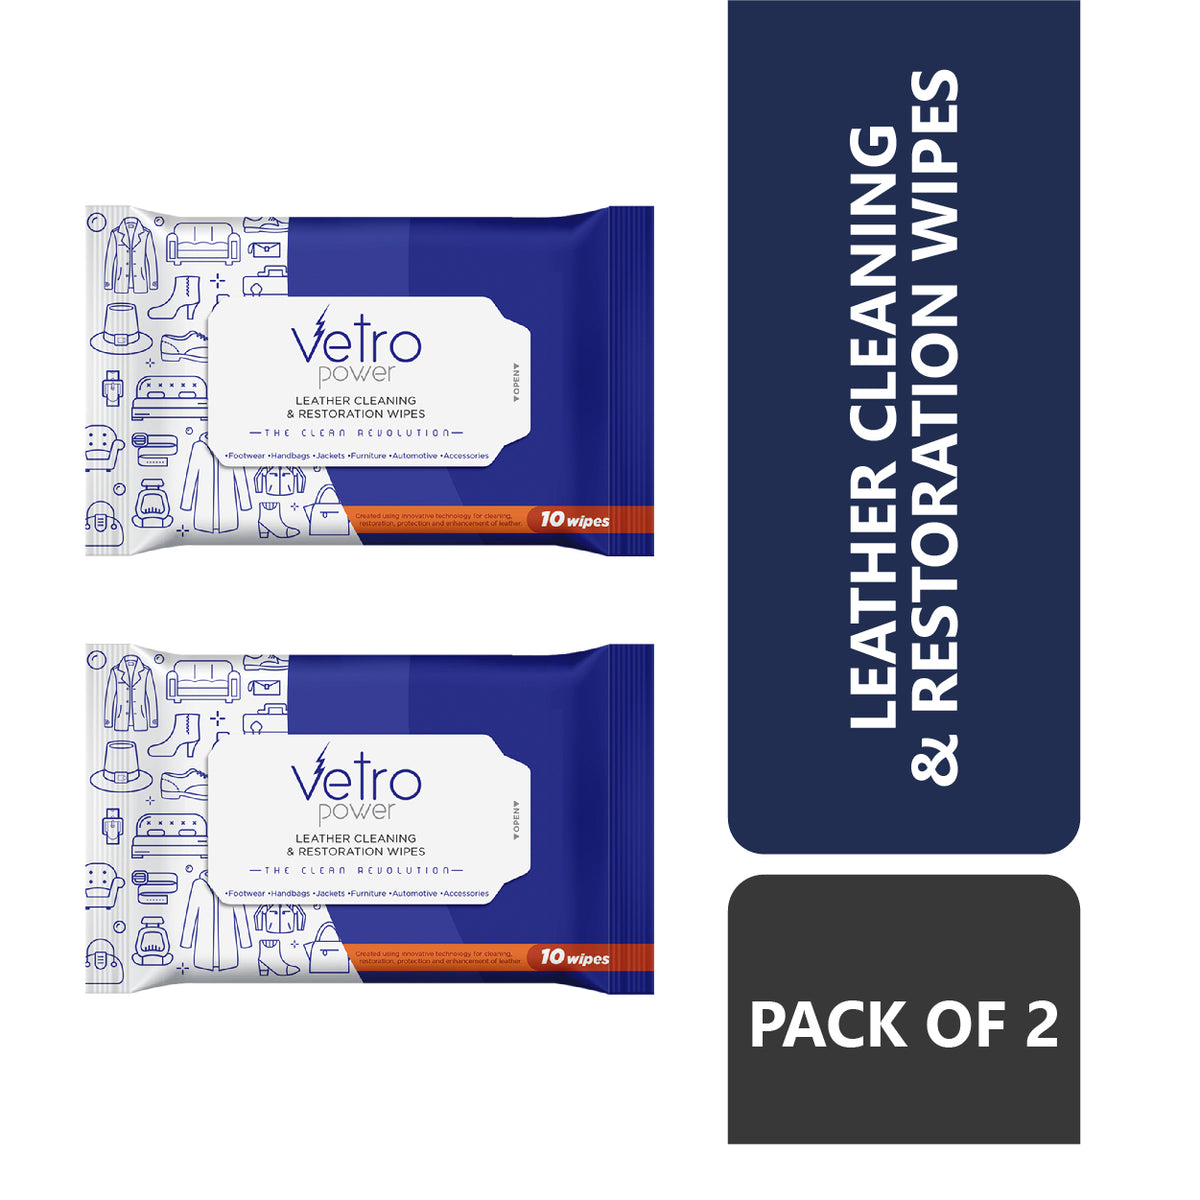 Vetro Power Leather Cleaning and Restoration Wipes Pack of 2